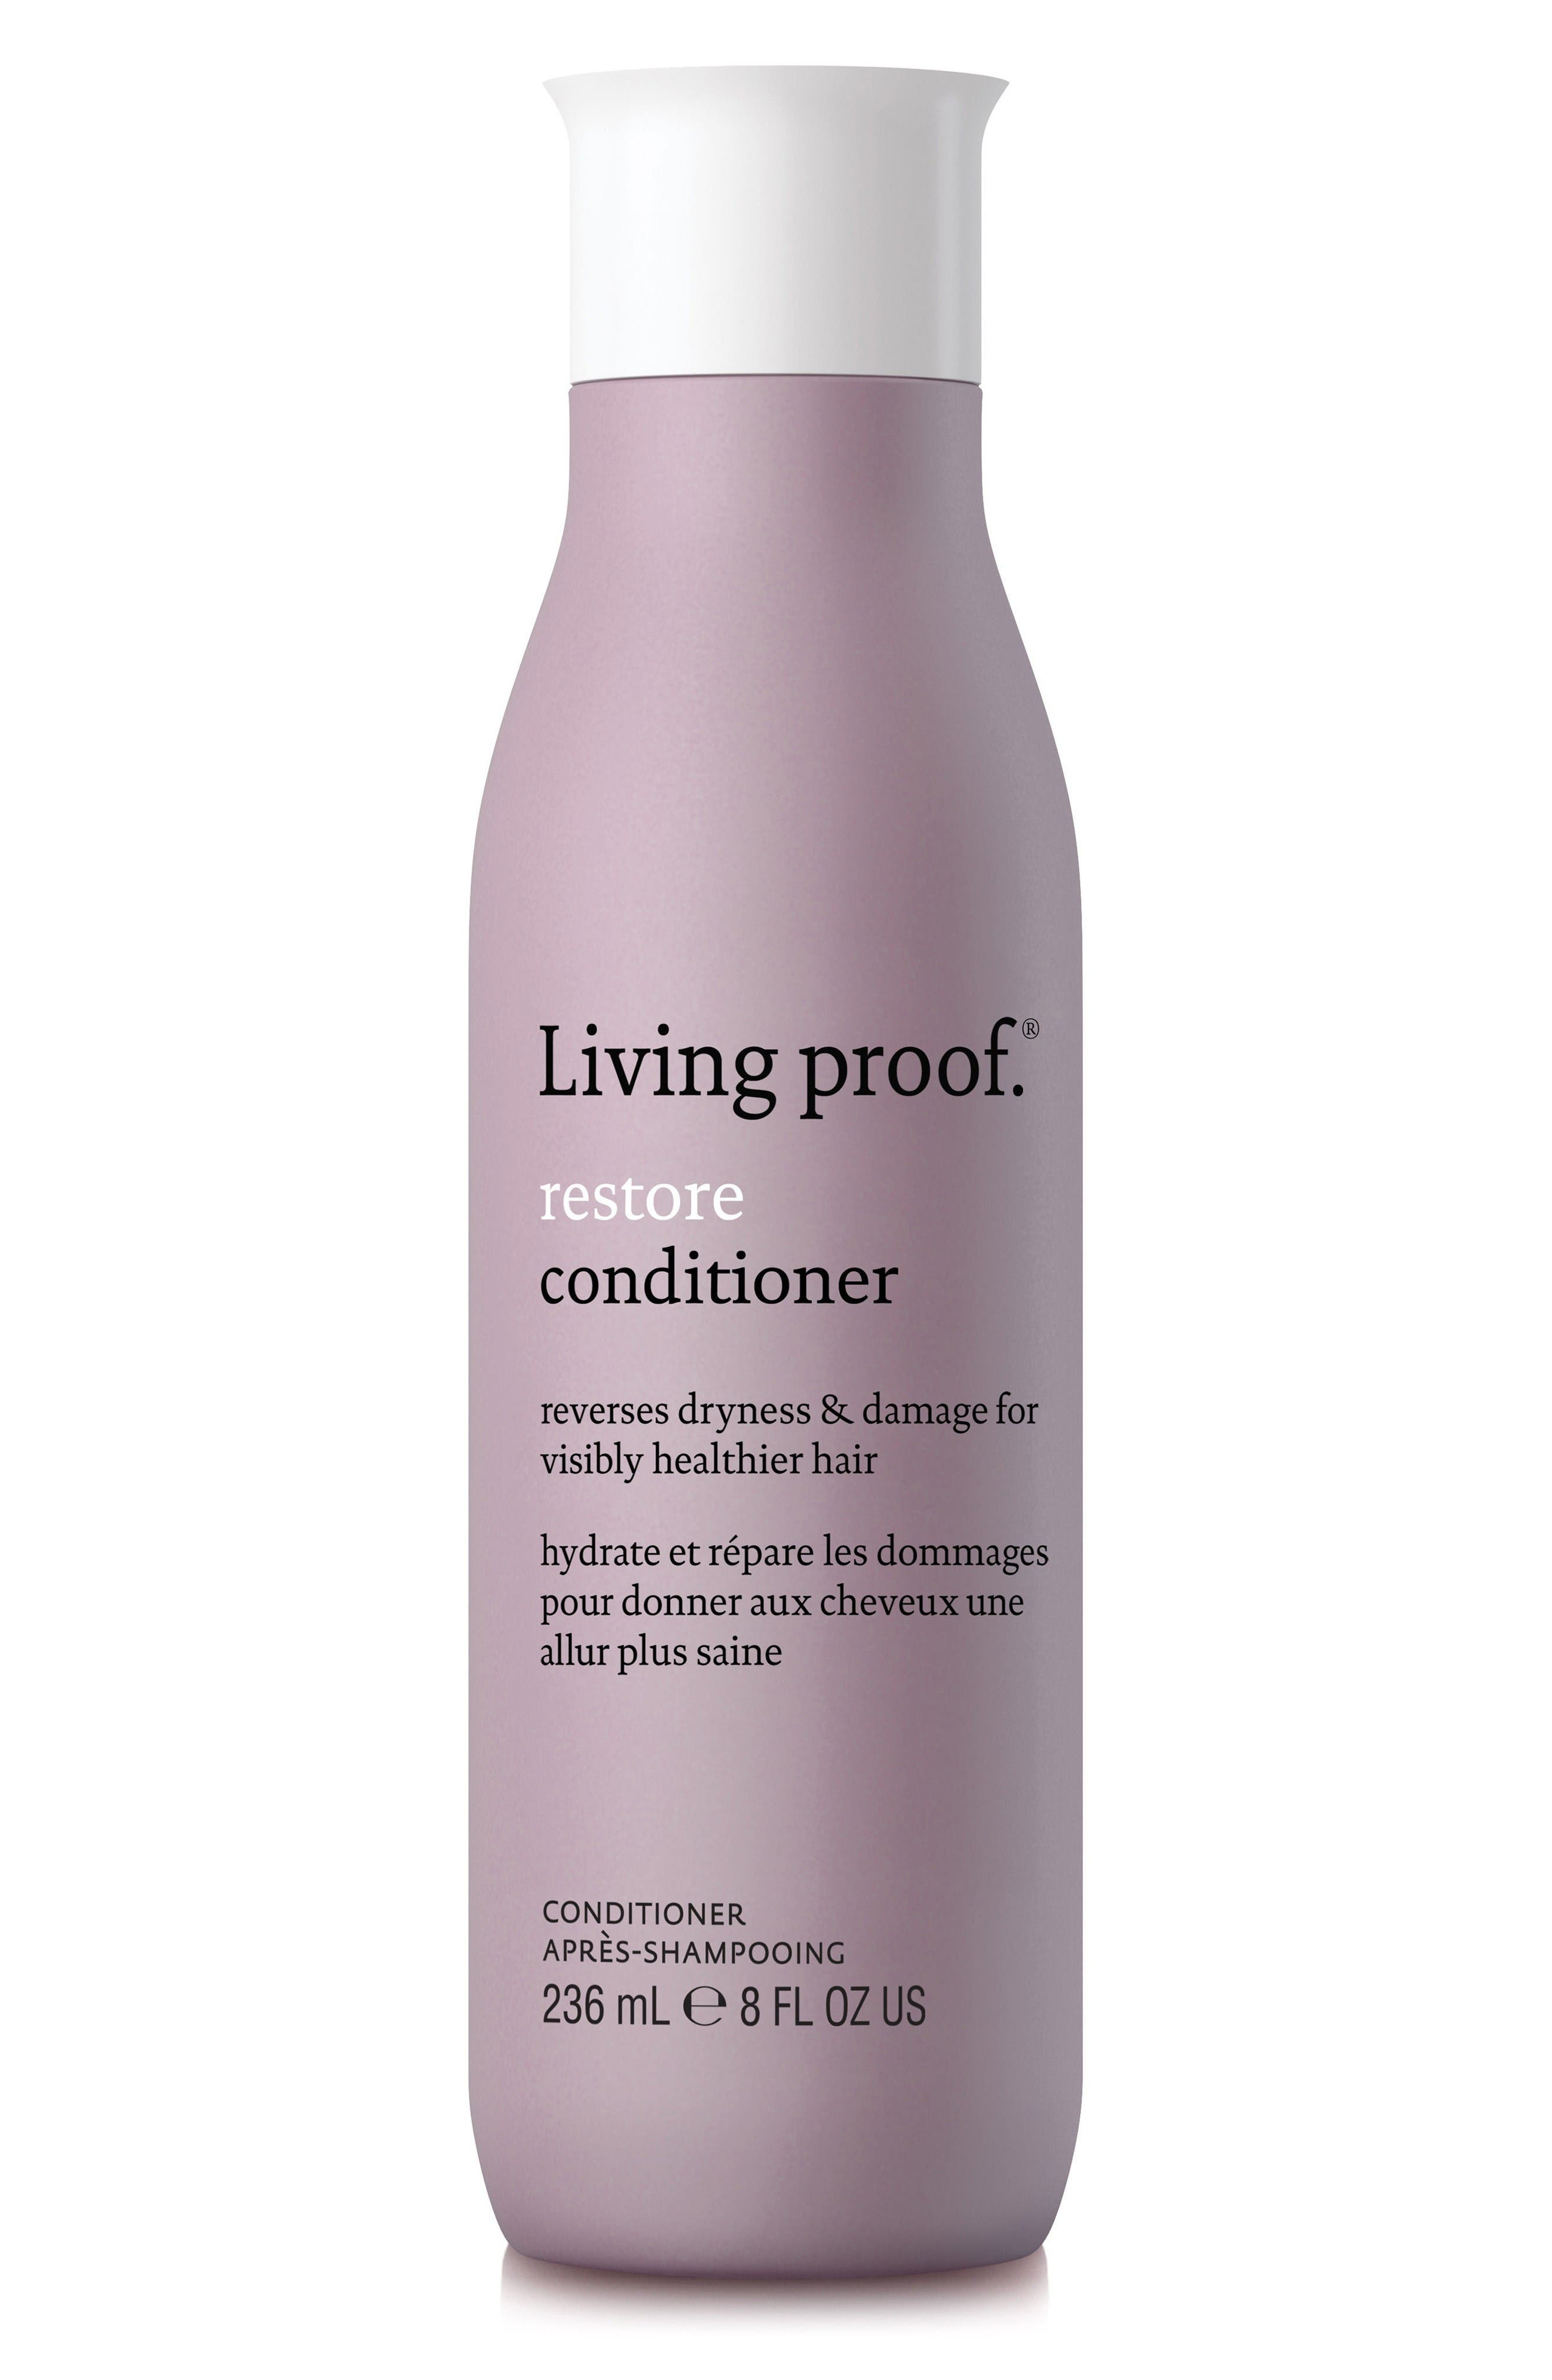 Alternate Image 1 Selected - Living proof® 'Restore' Conditioner for Dry or Damaged Hair